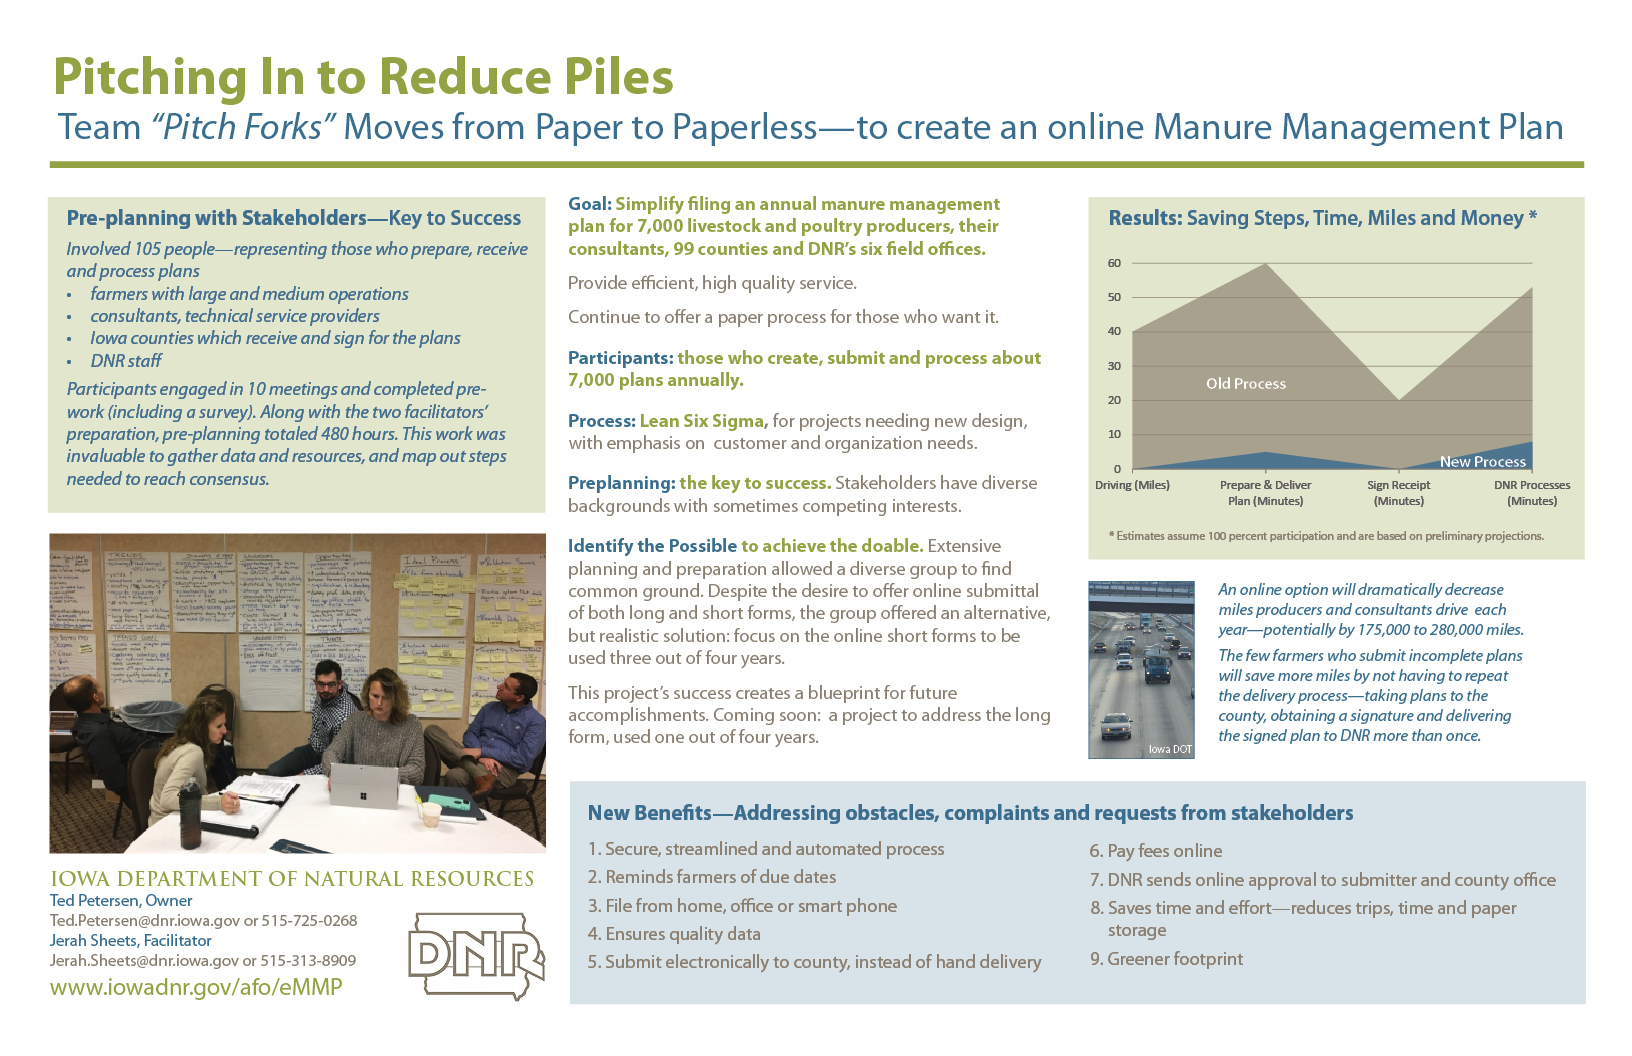 eMMP Poster, Overview of Pre-planning to improve MMP submittal process: Pitching in to Reduce Piles